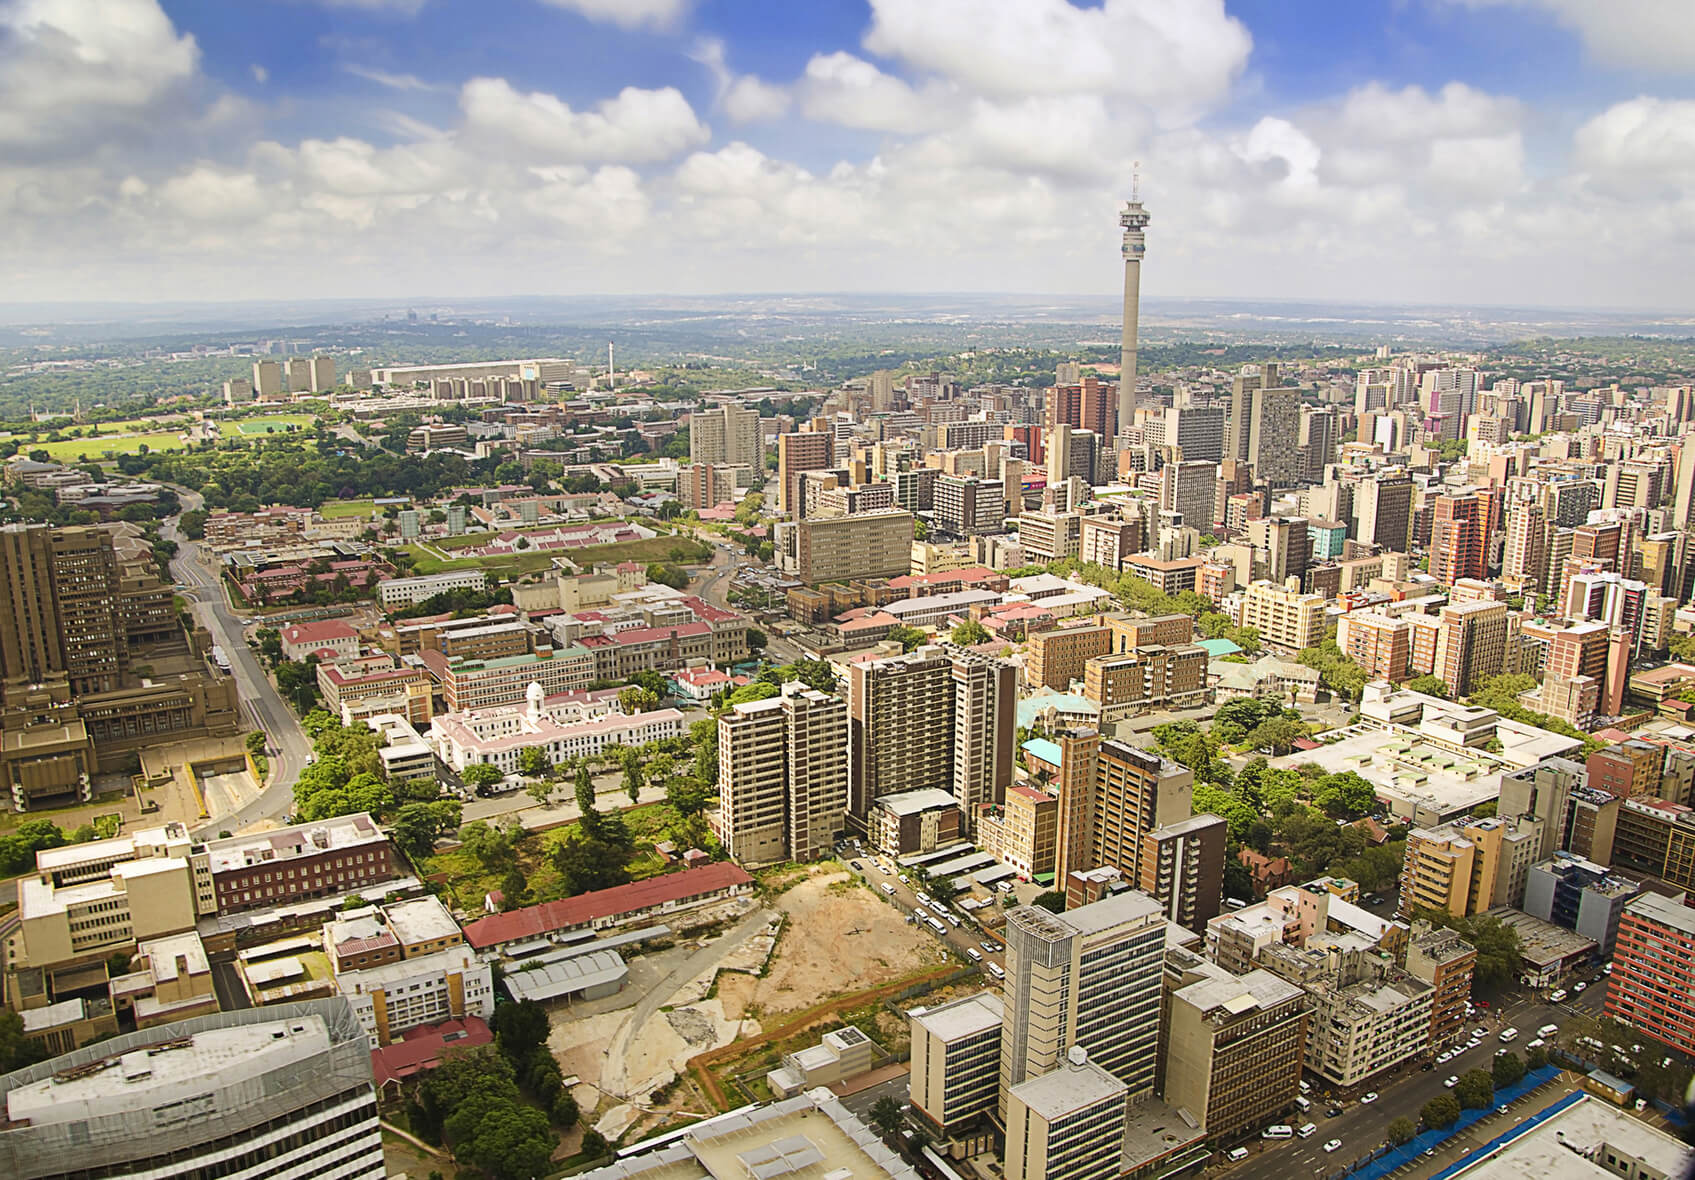 Amsterdam, Netherlands to Johannesburg, South Africa for only €376 roundtrip (Oct-Dec dates)